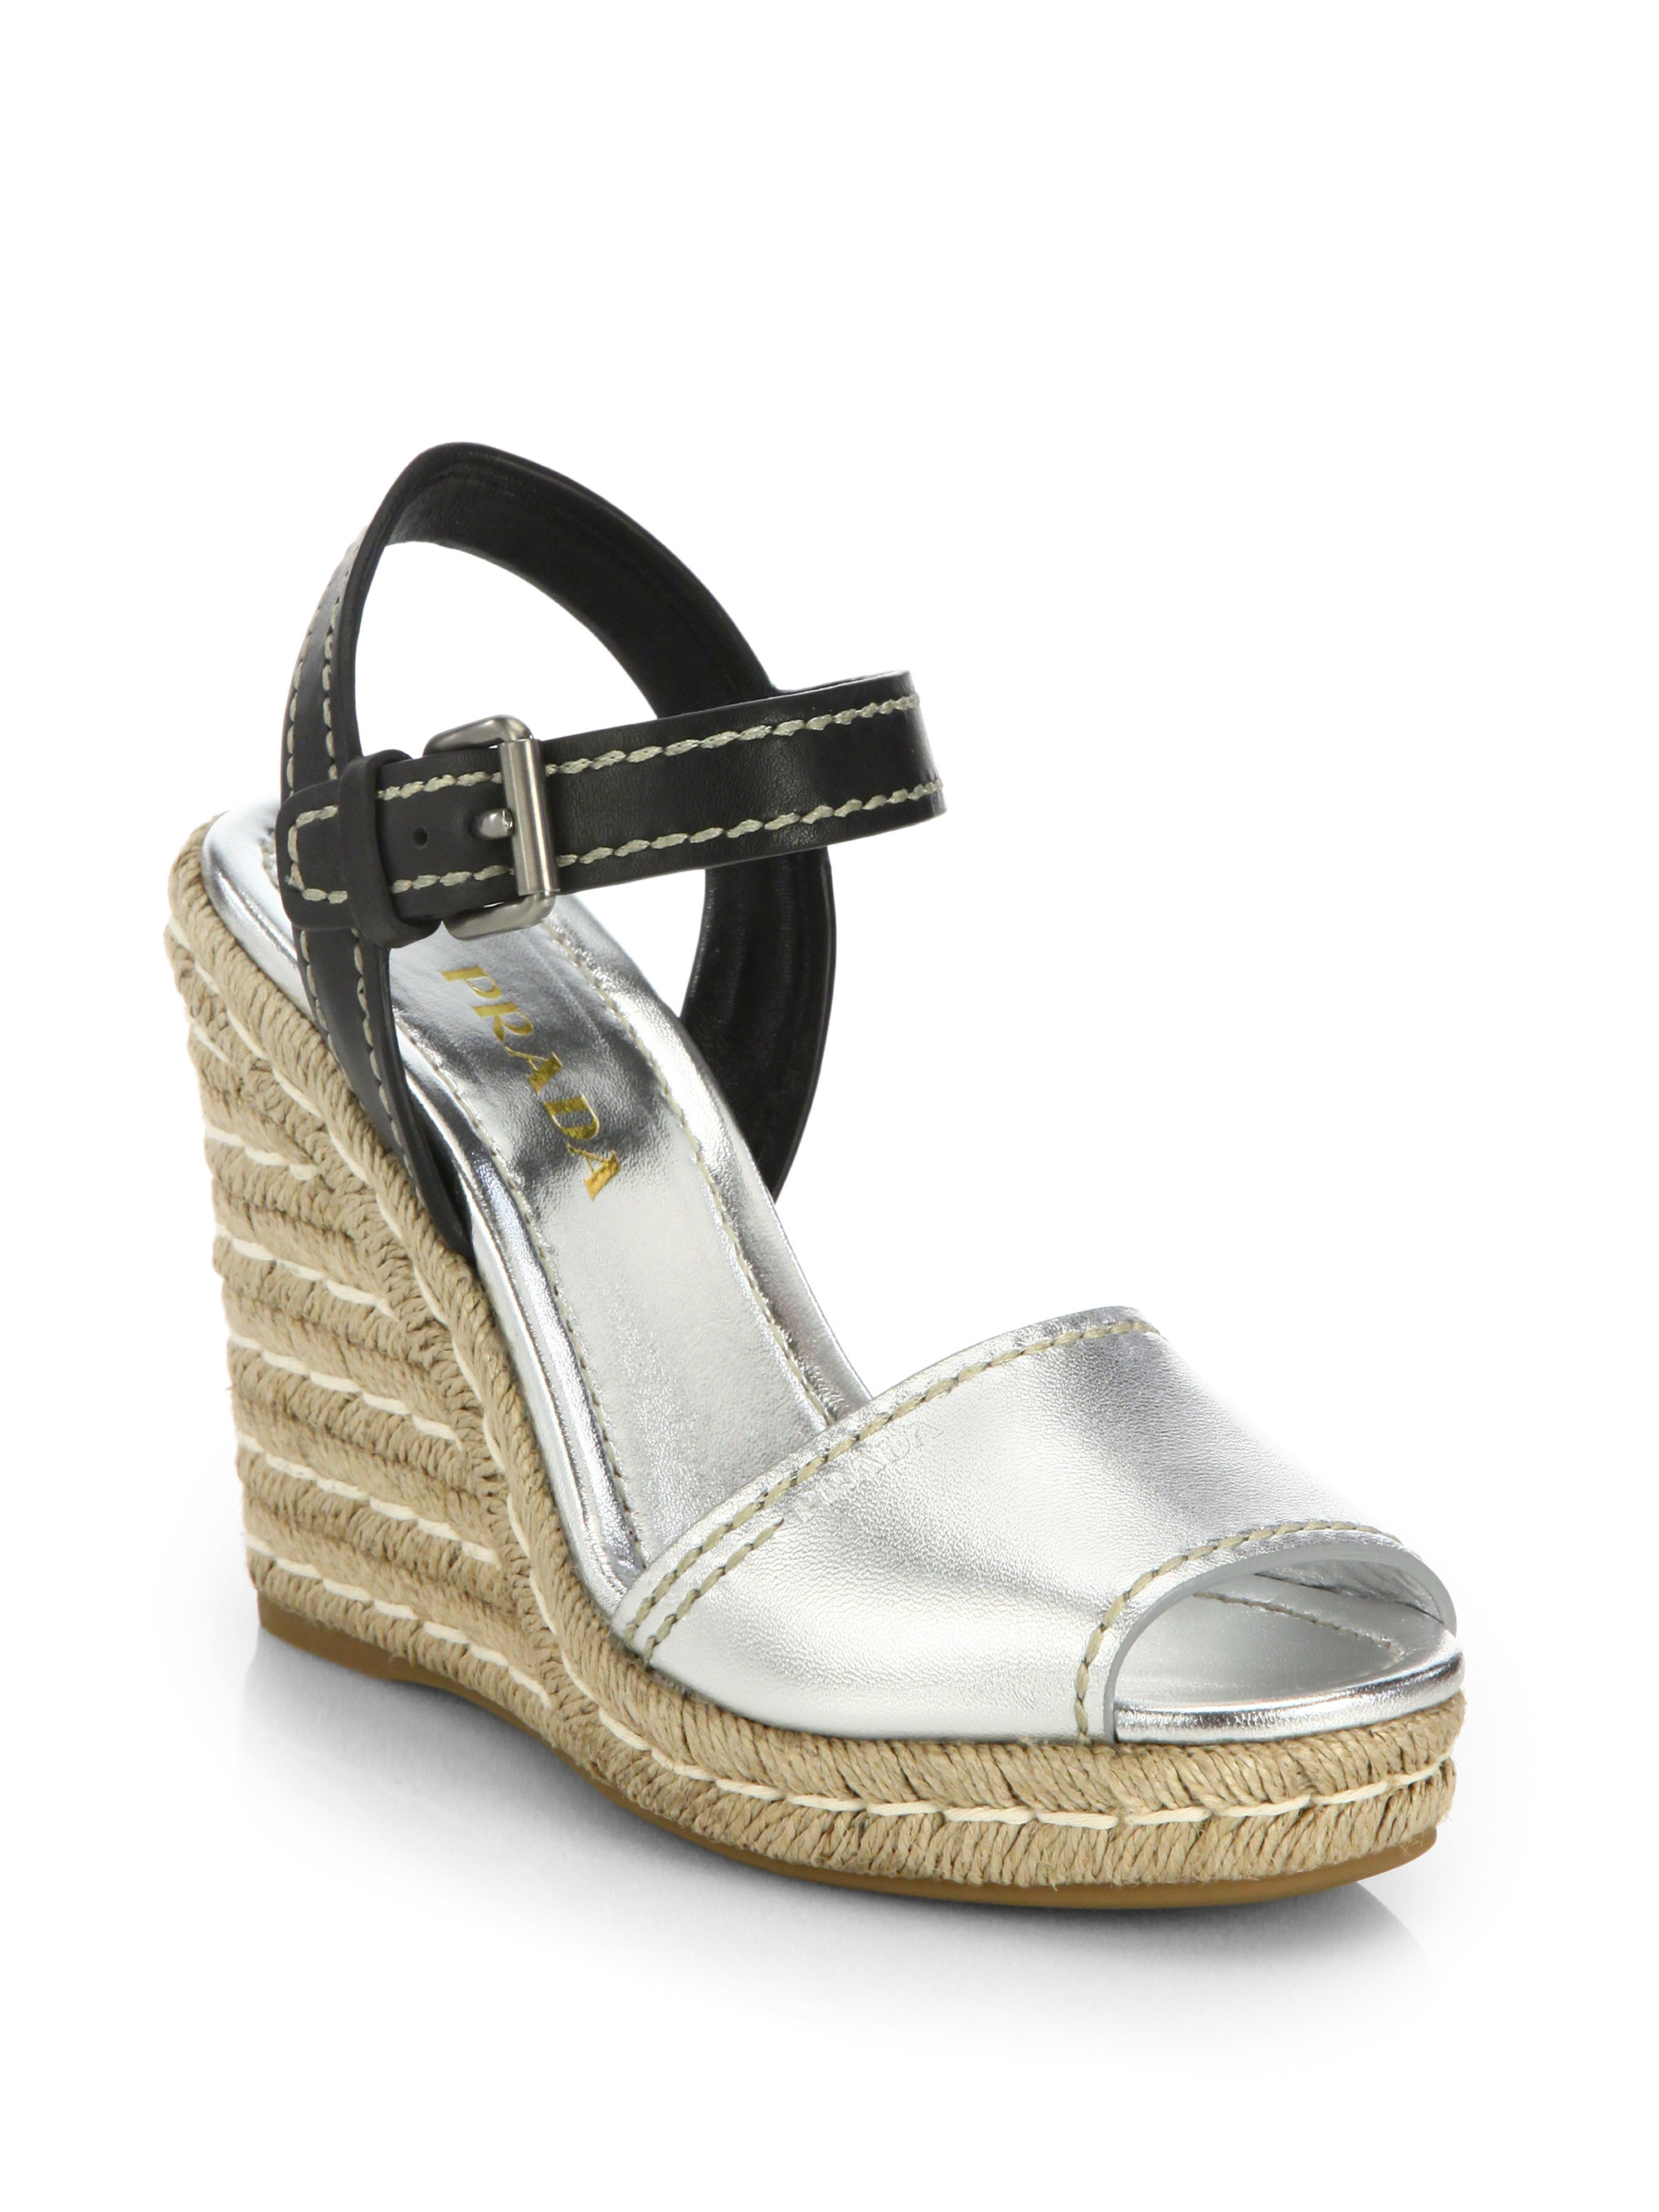 san francisco a8195 c87ff prada-black-leather-metallic-leather-espadrille-wedge-sandals-product-1-27792305-0-905348244-normal.jpeg